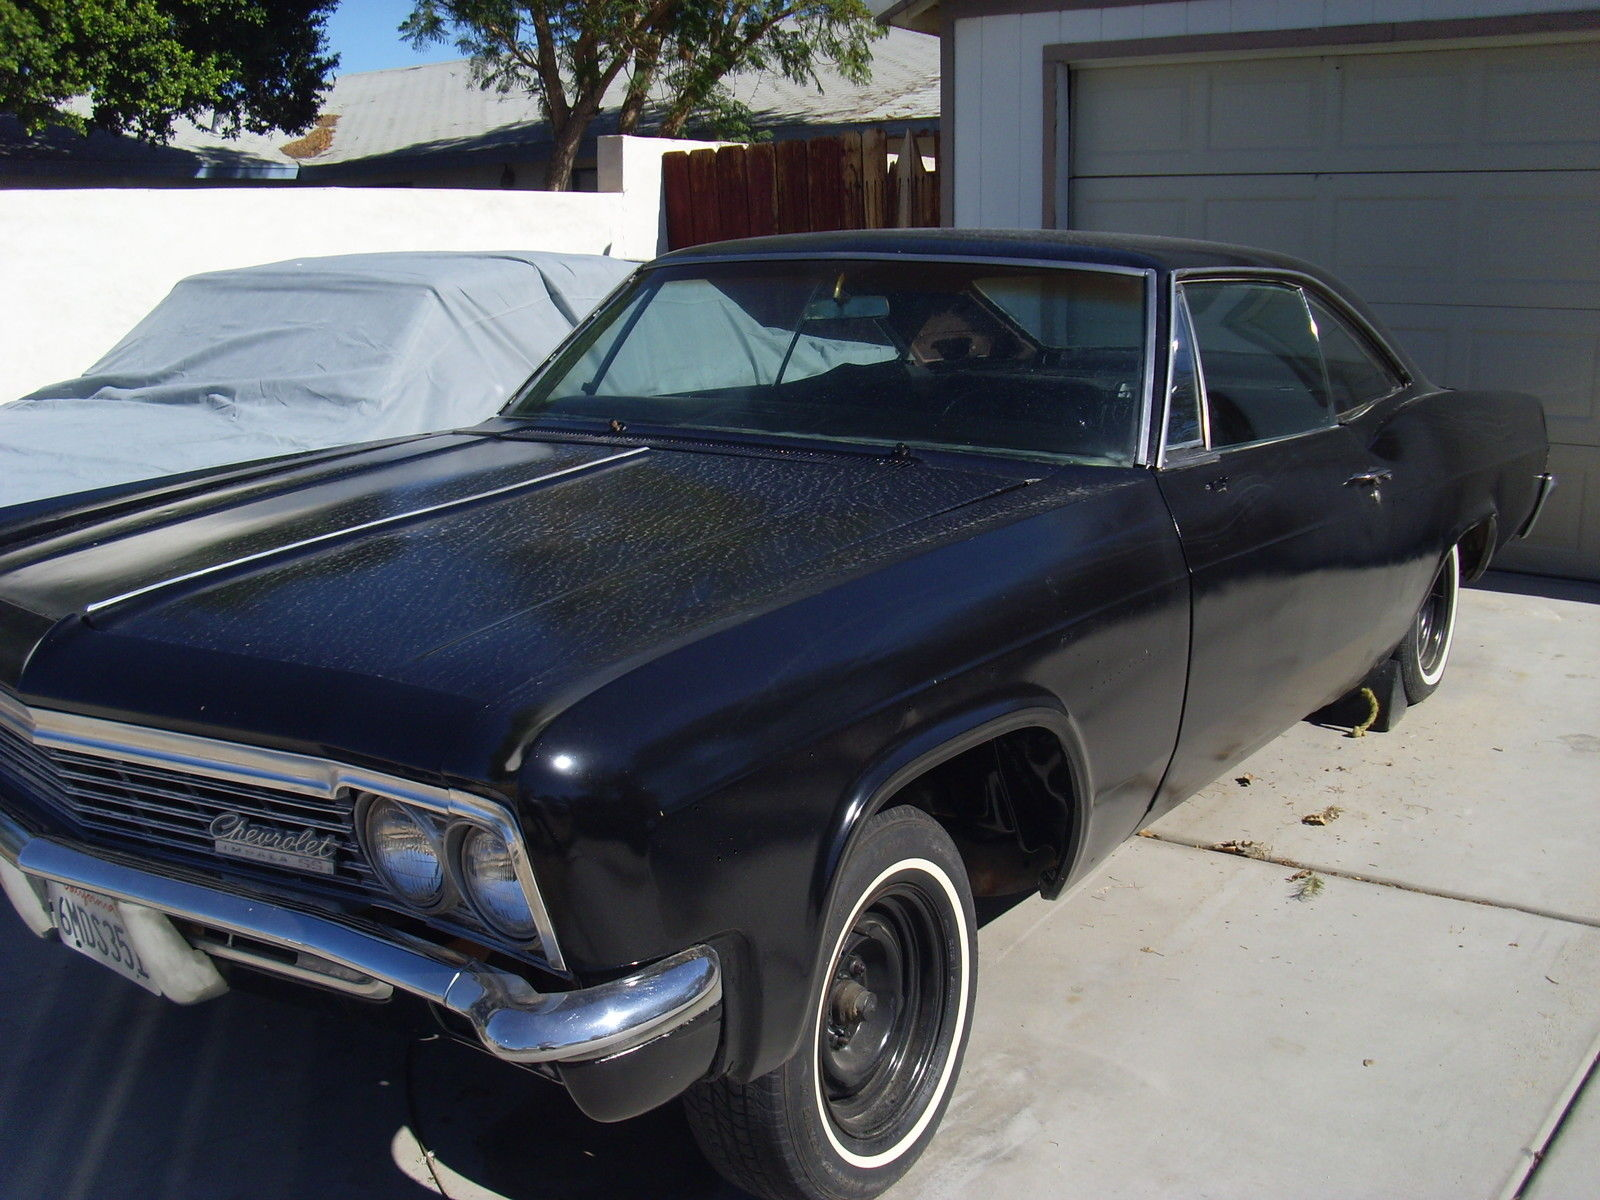 Classic 1966 Chevrolet Impala Ss Project Lowrider Hot Rod 656667 6566676869